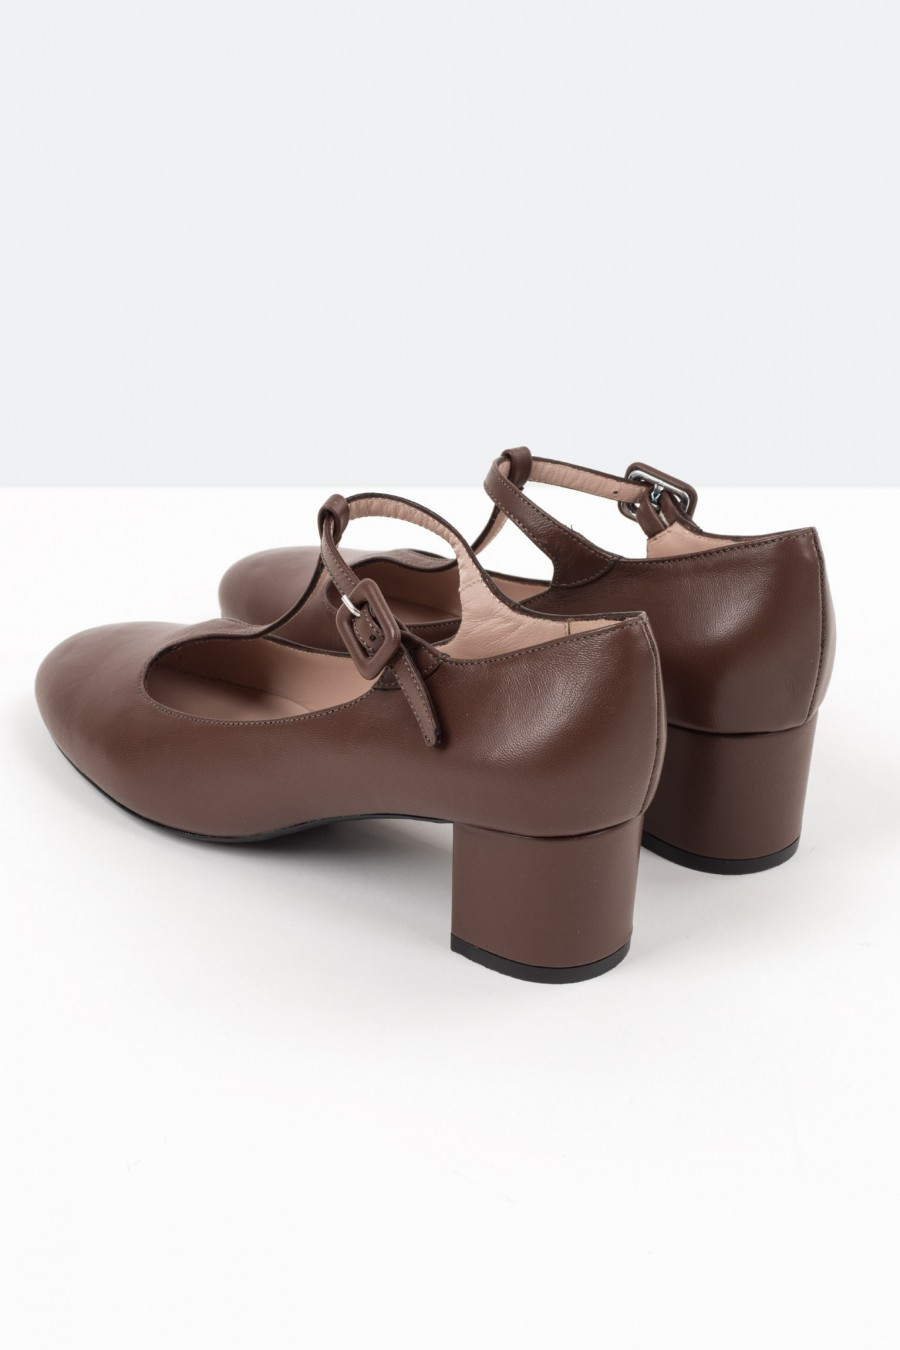 Brown leather bebè shoes with covered buckle